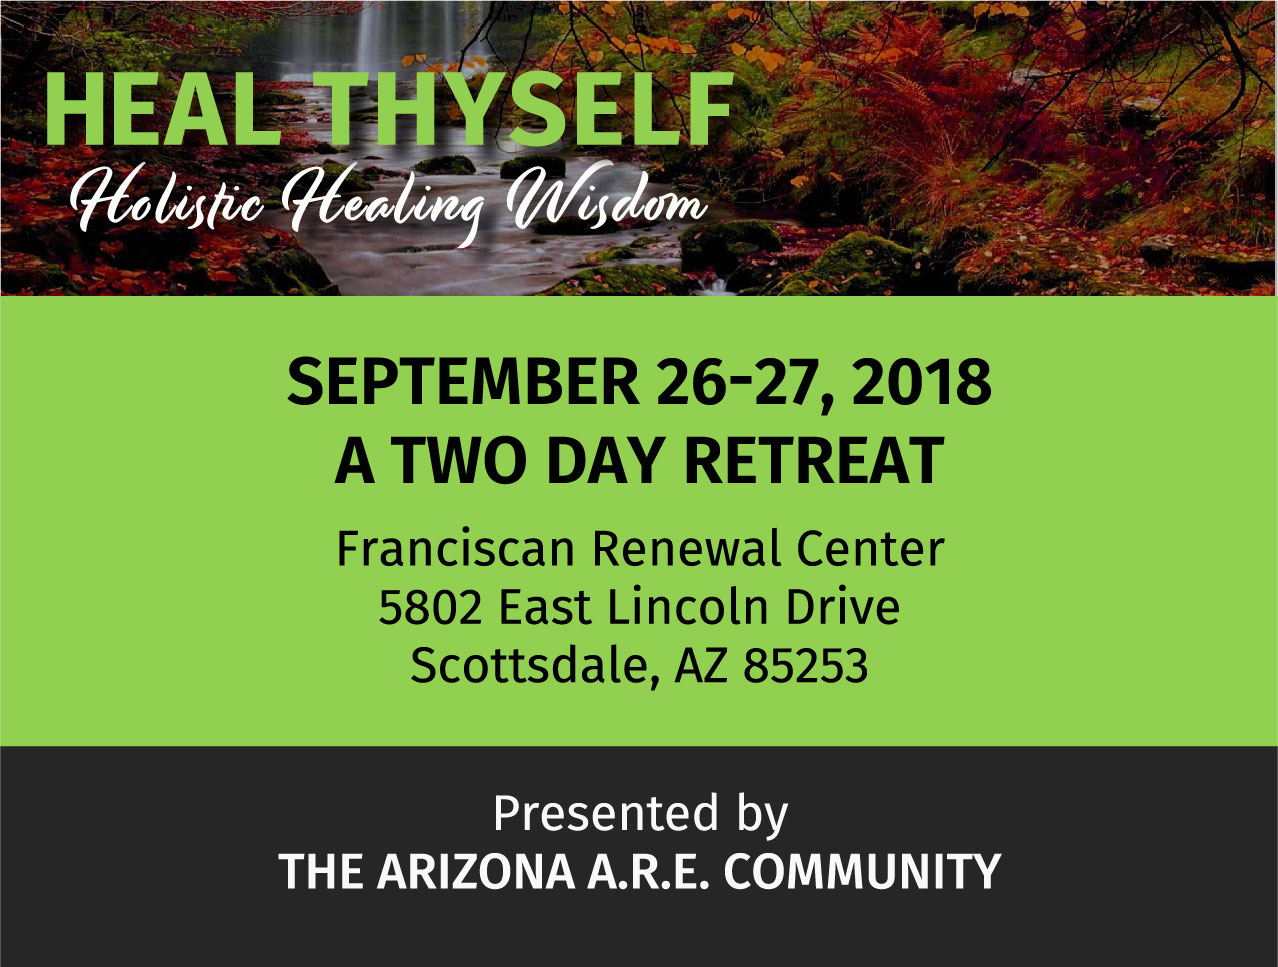 Heal Thyself holistic healing Wisdom 2 day retreat